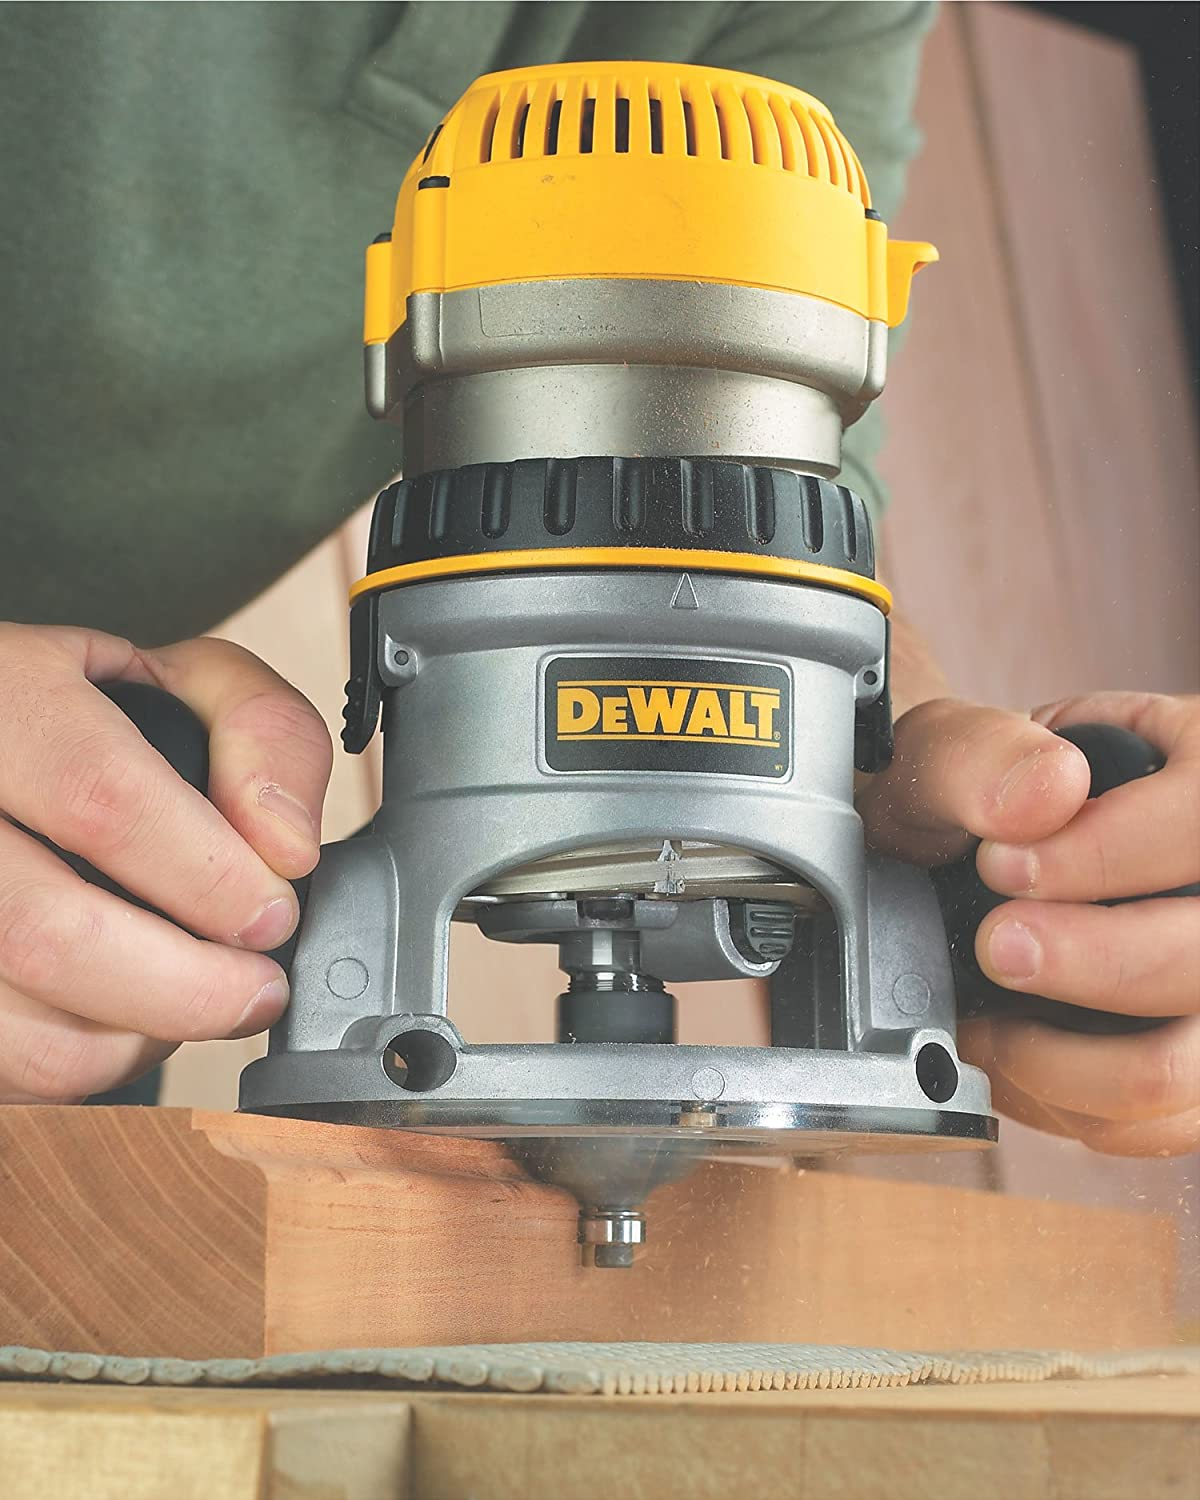 Dewalt dw618 2 14 hp electronic variable speed fixed base router dewalt dw618 2 14 hp electronic variable speed fixed base router power routers amazon greentooth Images